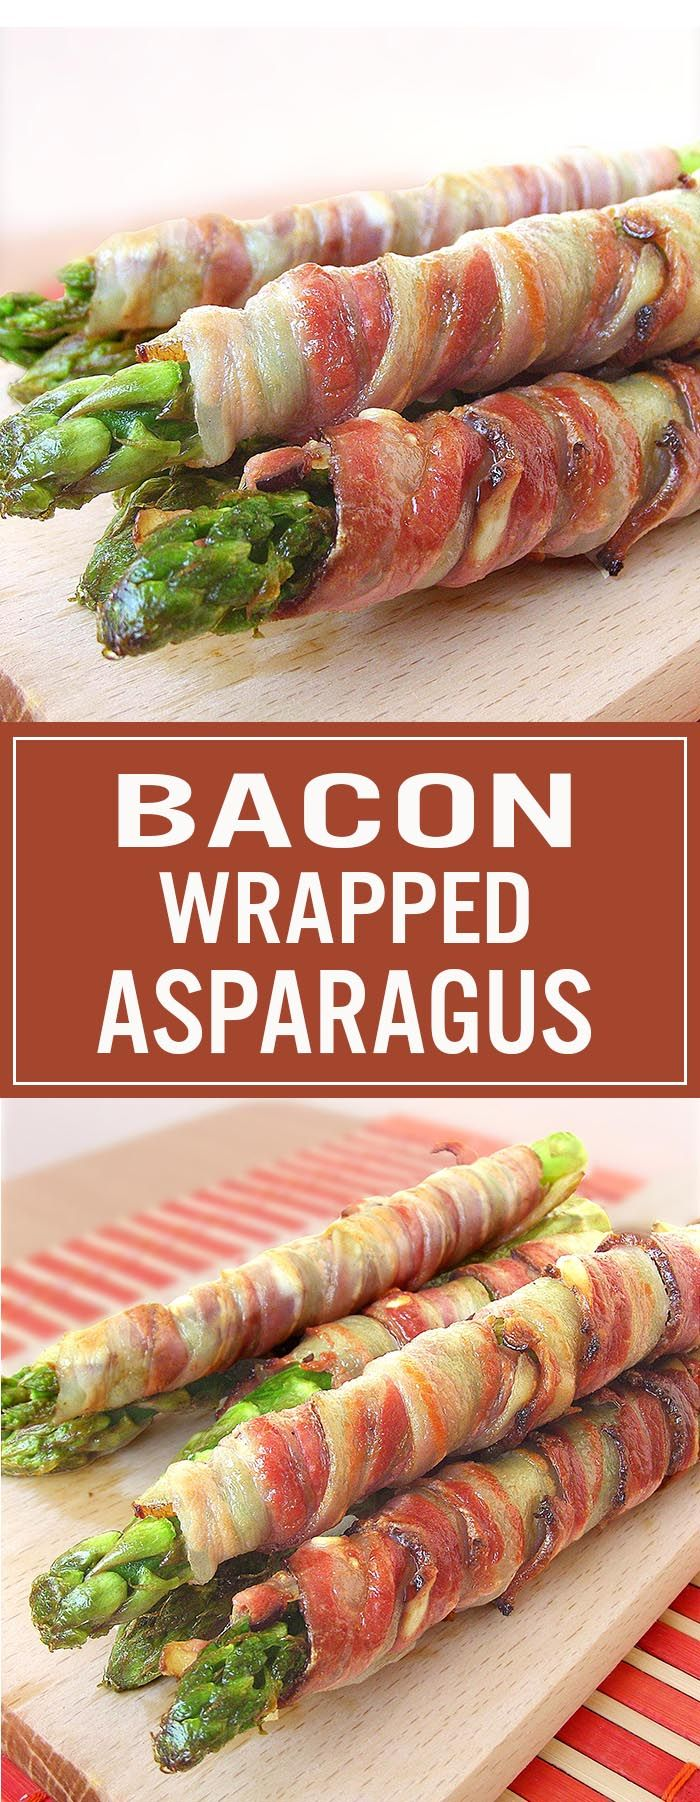 Bacon Wrapped Asparagus - so simple to make and so delicious!